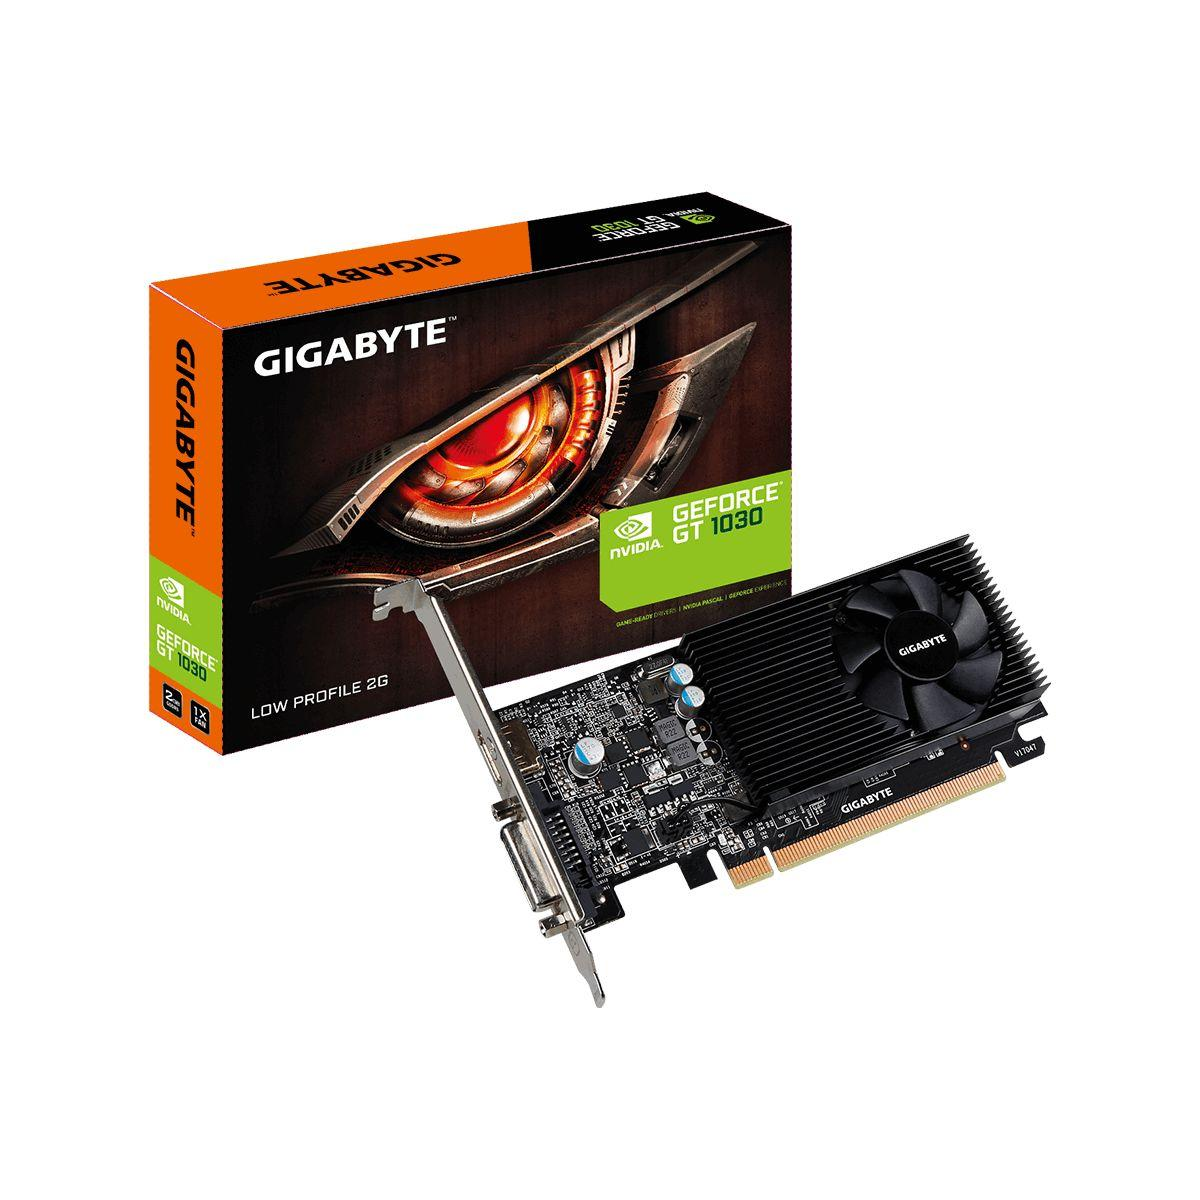 Carte graphique nvidia gigabyte geforce gt 1030 low profile 2g - 2% de remise imm�diate avec le code : fete2 (photo)